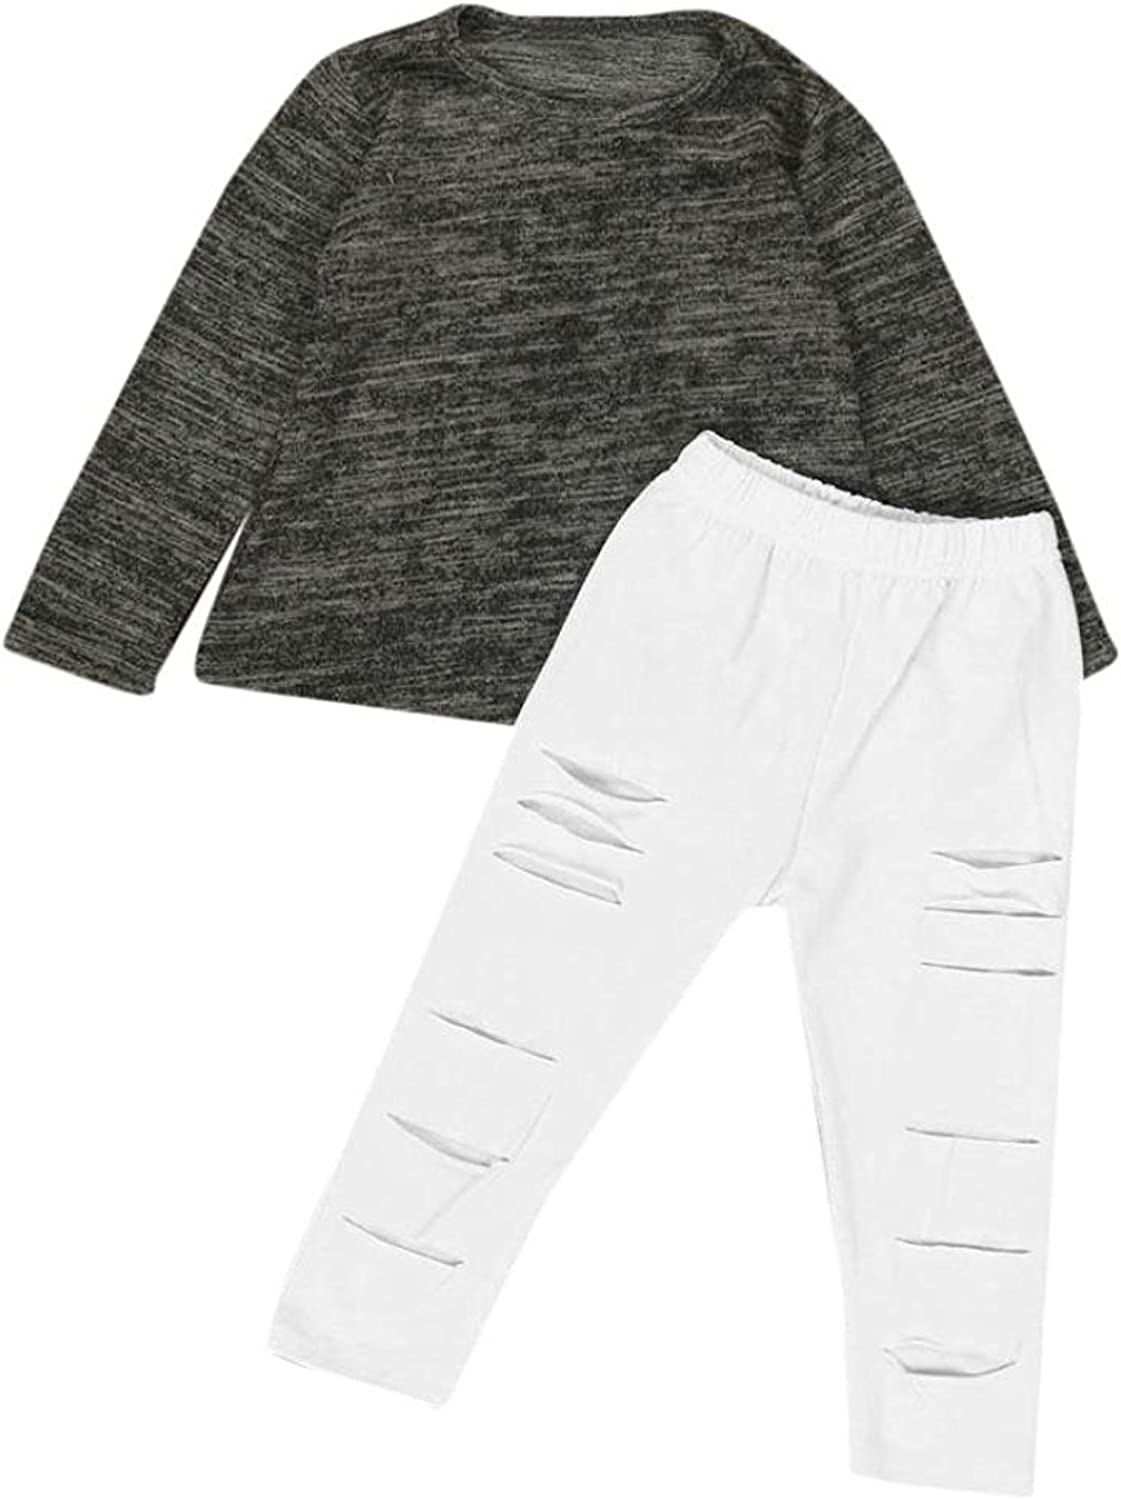 Fulltime 2-7 Years Old Kids Girls Outfit Clothes Long Sleeve T-Shirt Tops Long Pants Sets TM